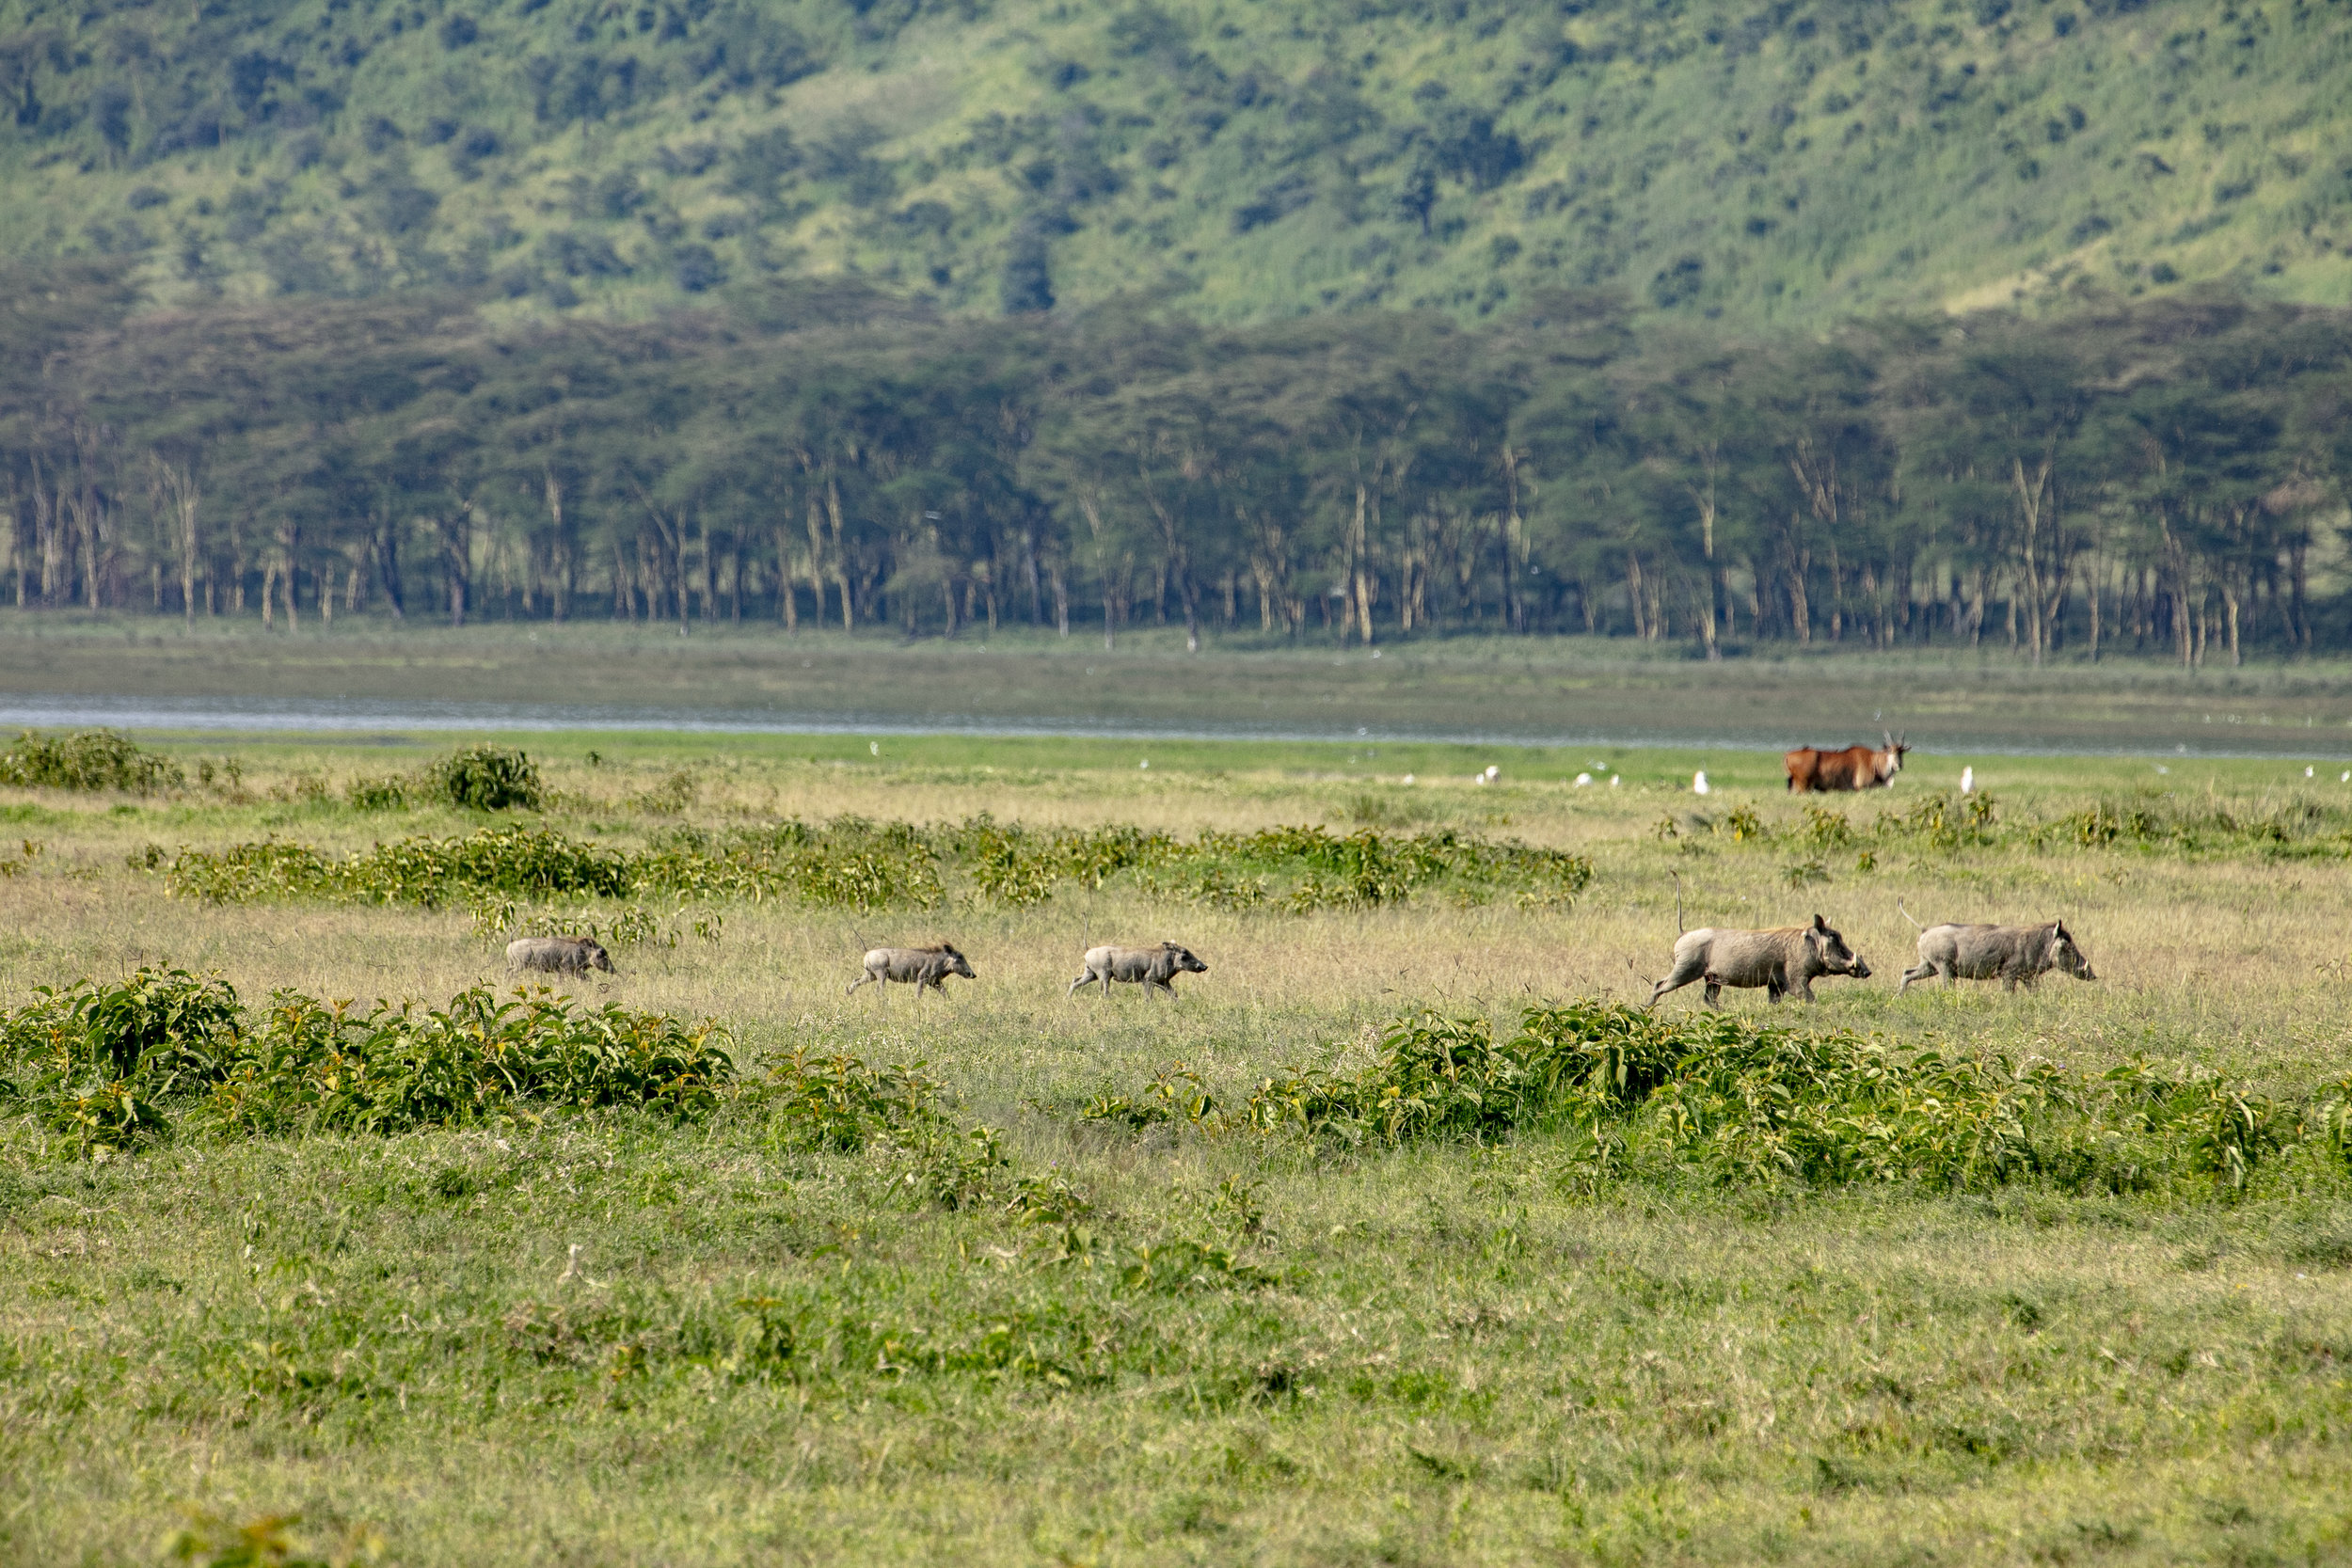 African Adventure - 19 July '18 - Nairobi to Nakuru National Park - 032.JPG